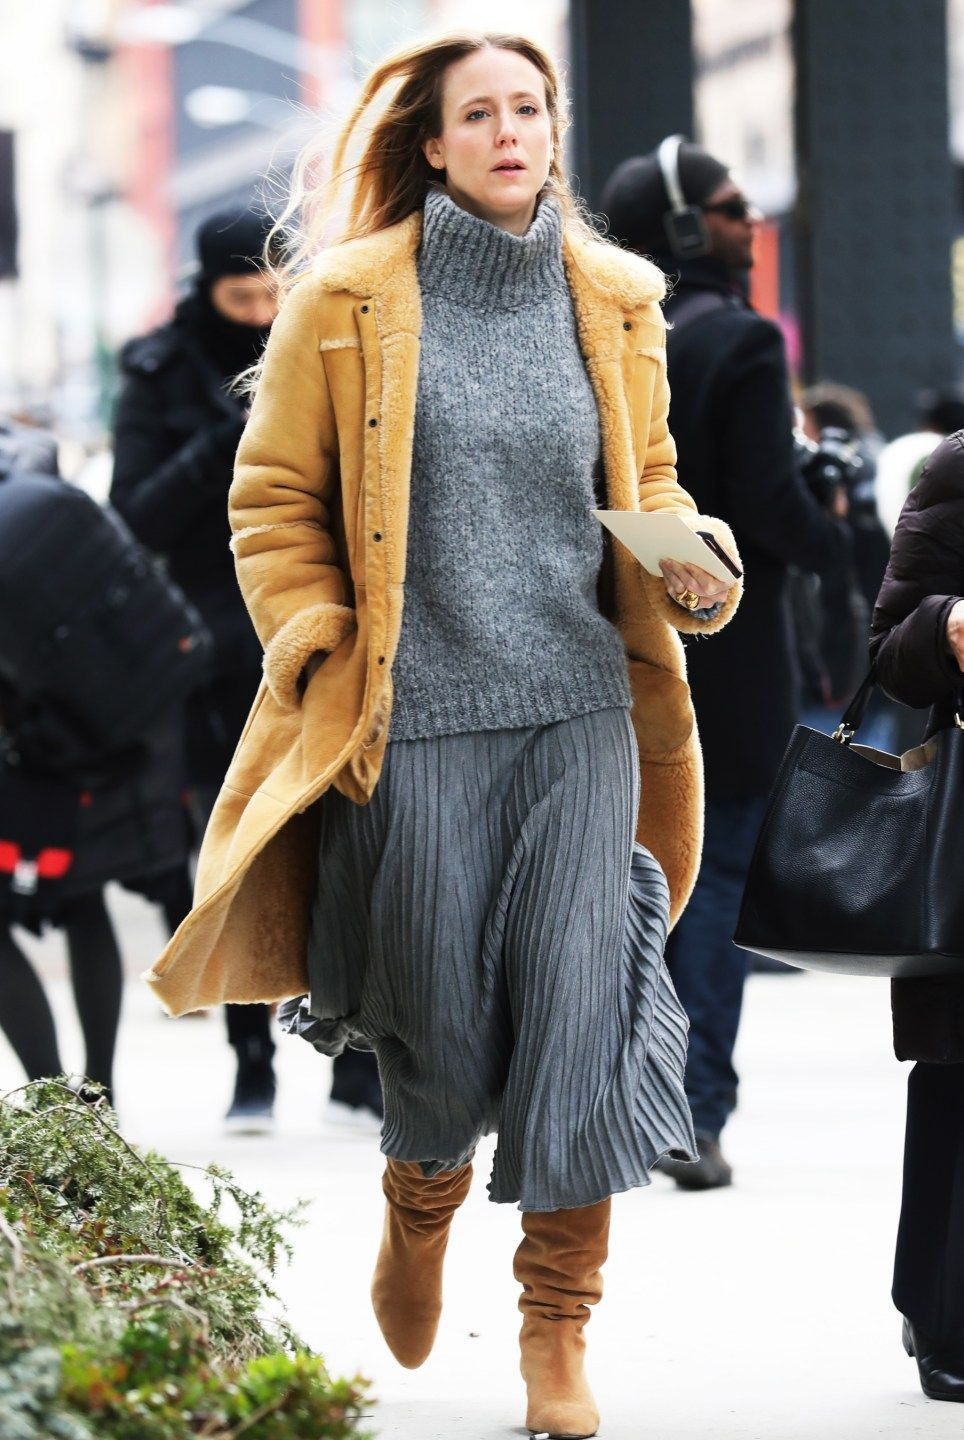 New York Fashion Week Street Style Day 6 Fall 2017 by Myoungsoo Lee, See the best street style captured at NYFW:Women's Fall 2017 at The Impression.com